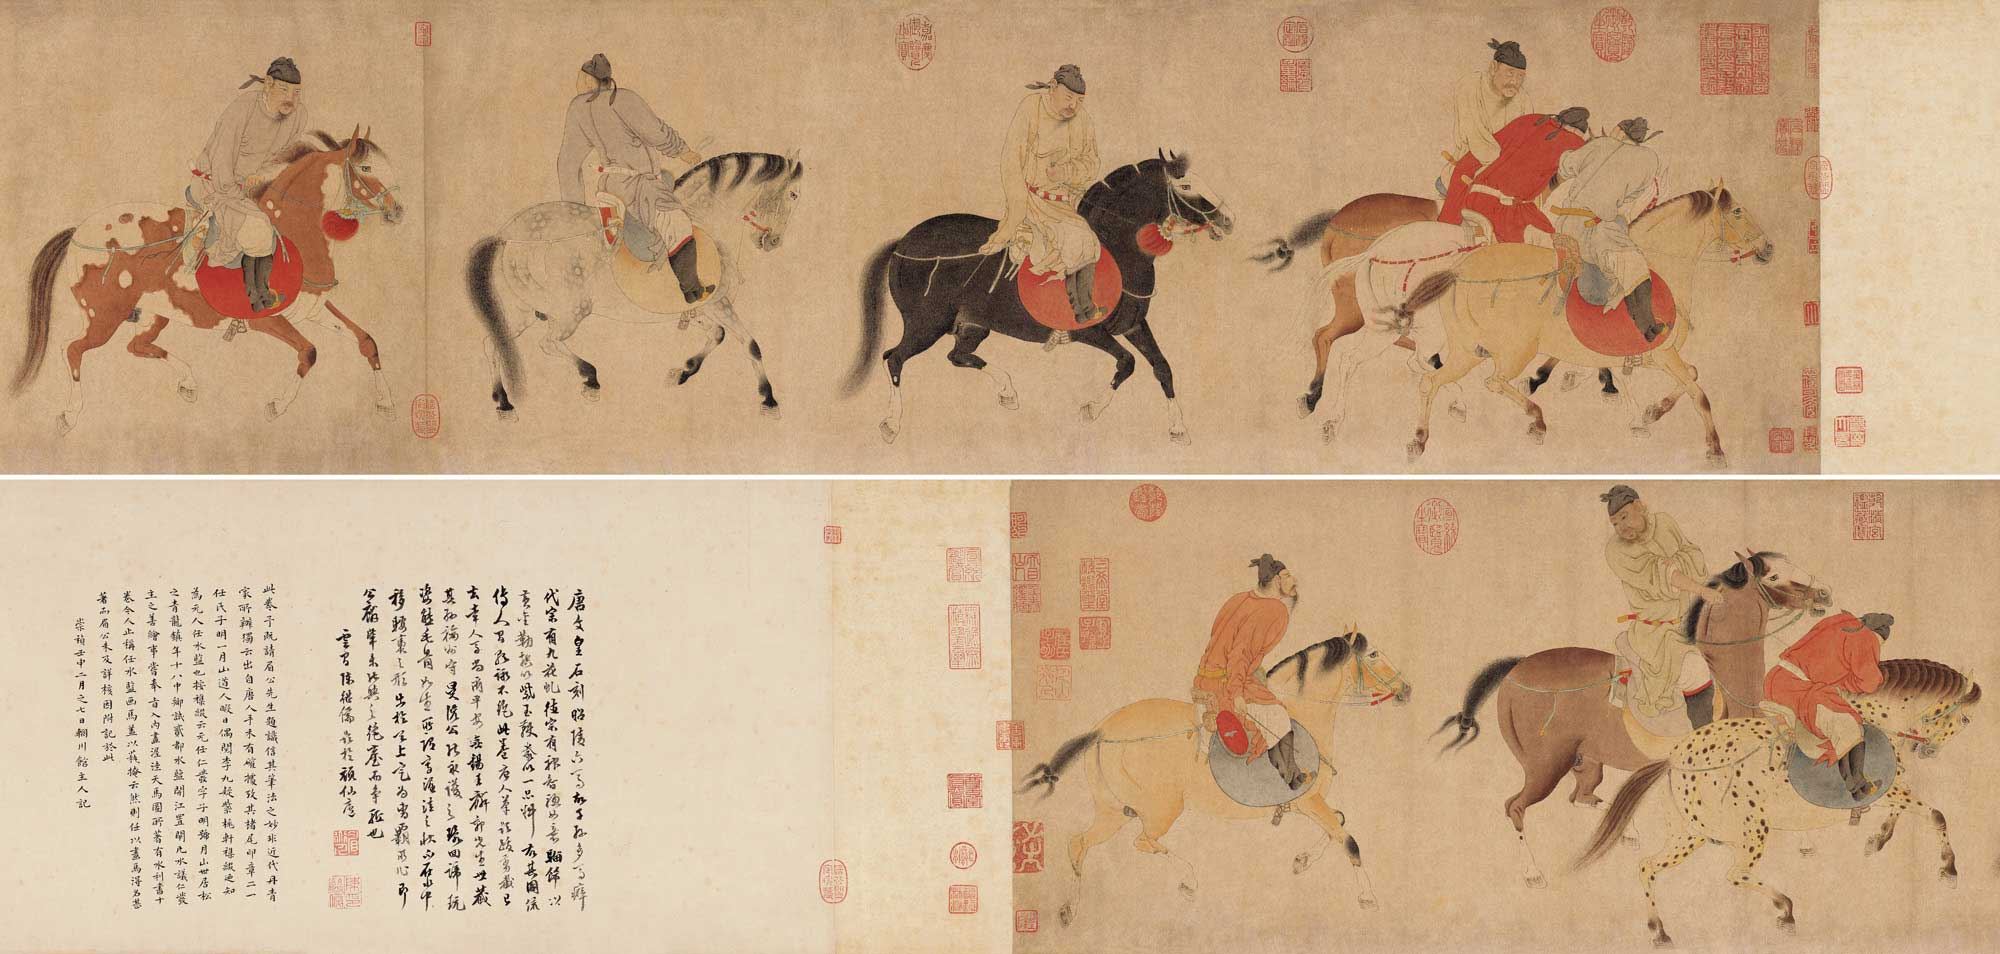 The painting was created by Ren Renfa, a prominent painter of horses and also a high-ranking official in the Yuan dynasty. It exemplifies Ren